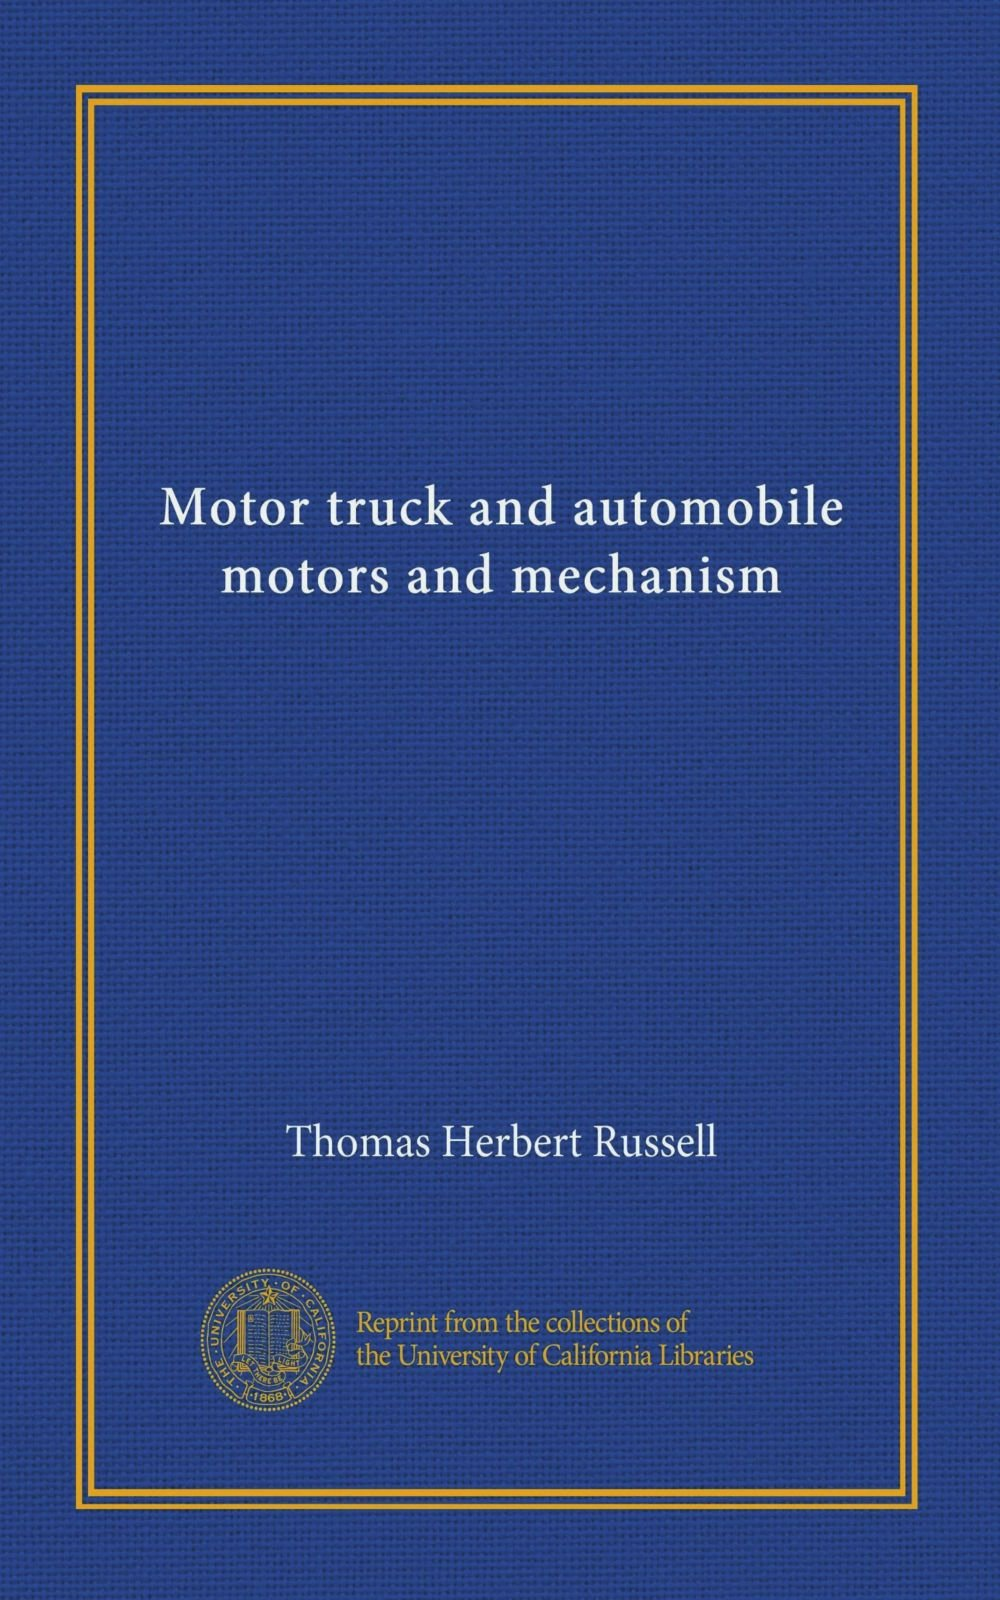 Motor truck and automobile motors and mechanism PDF